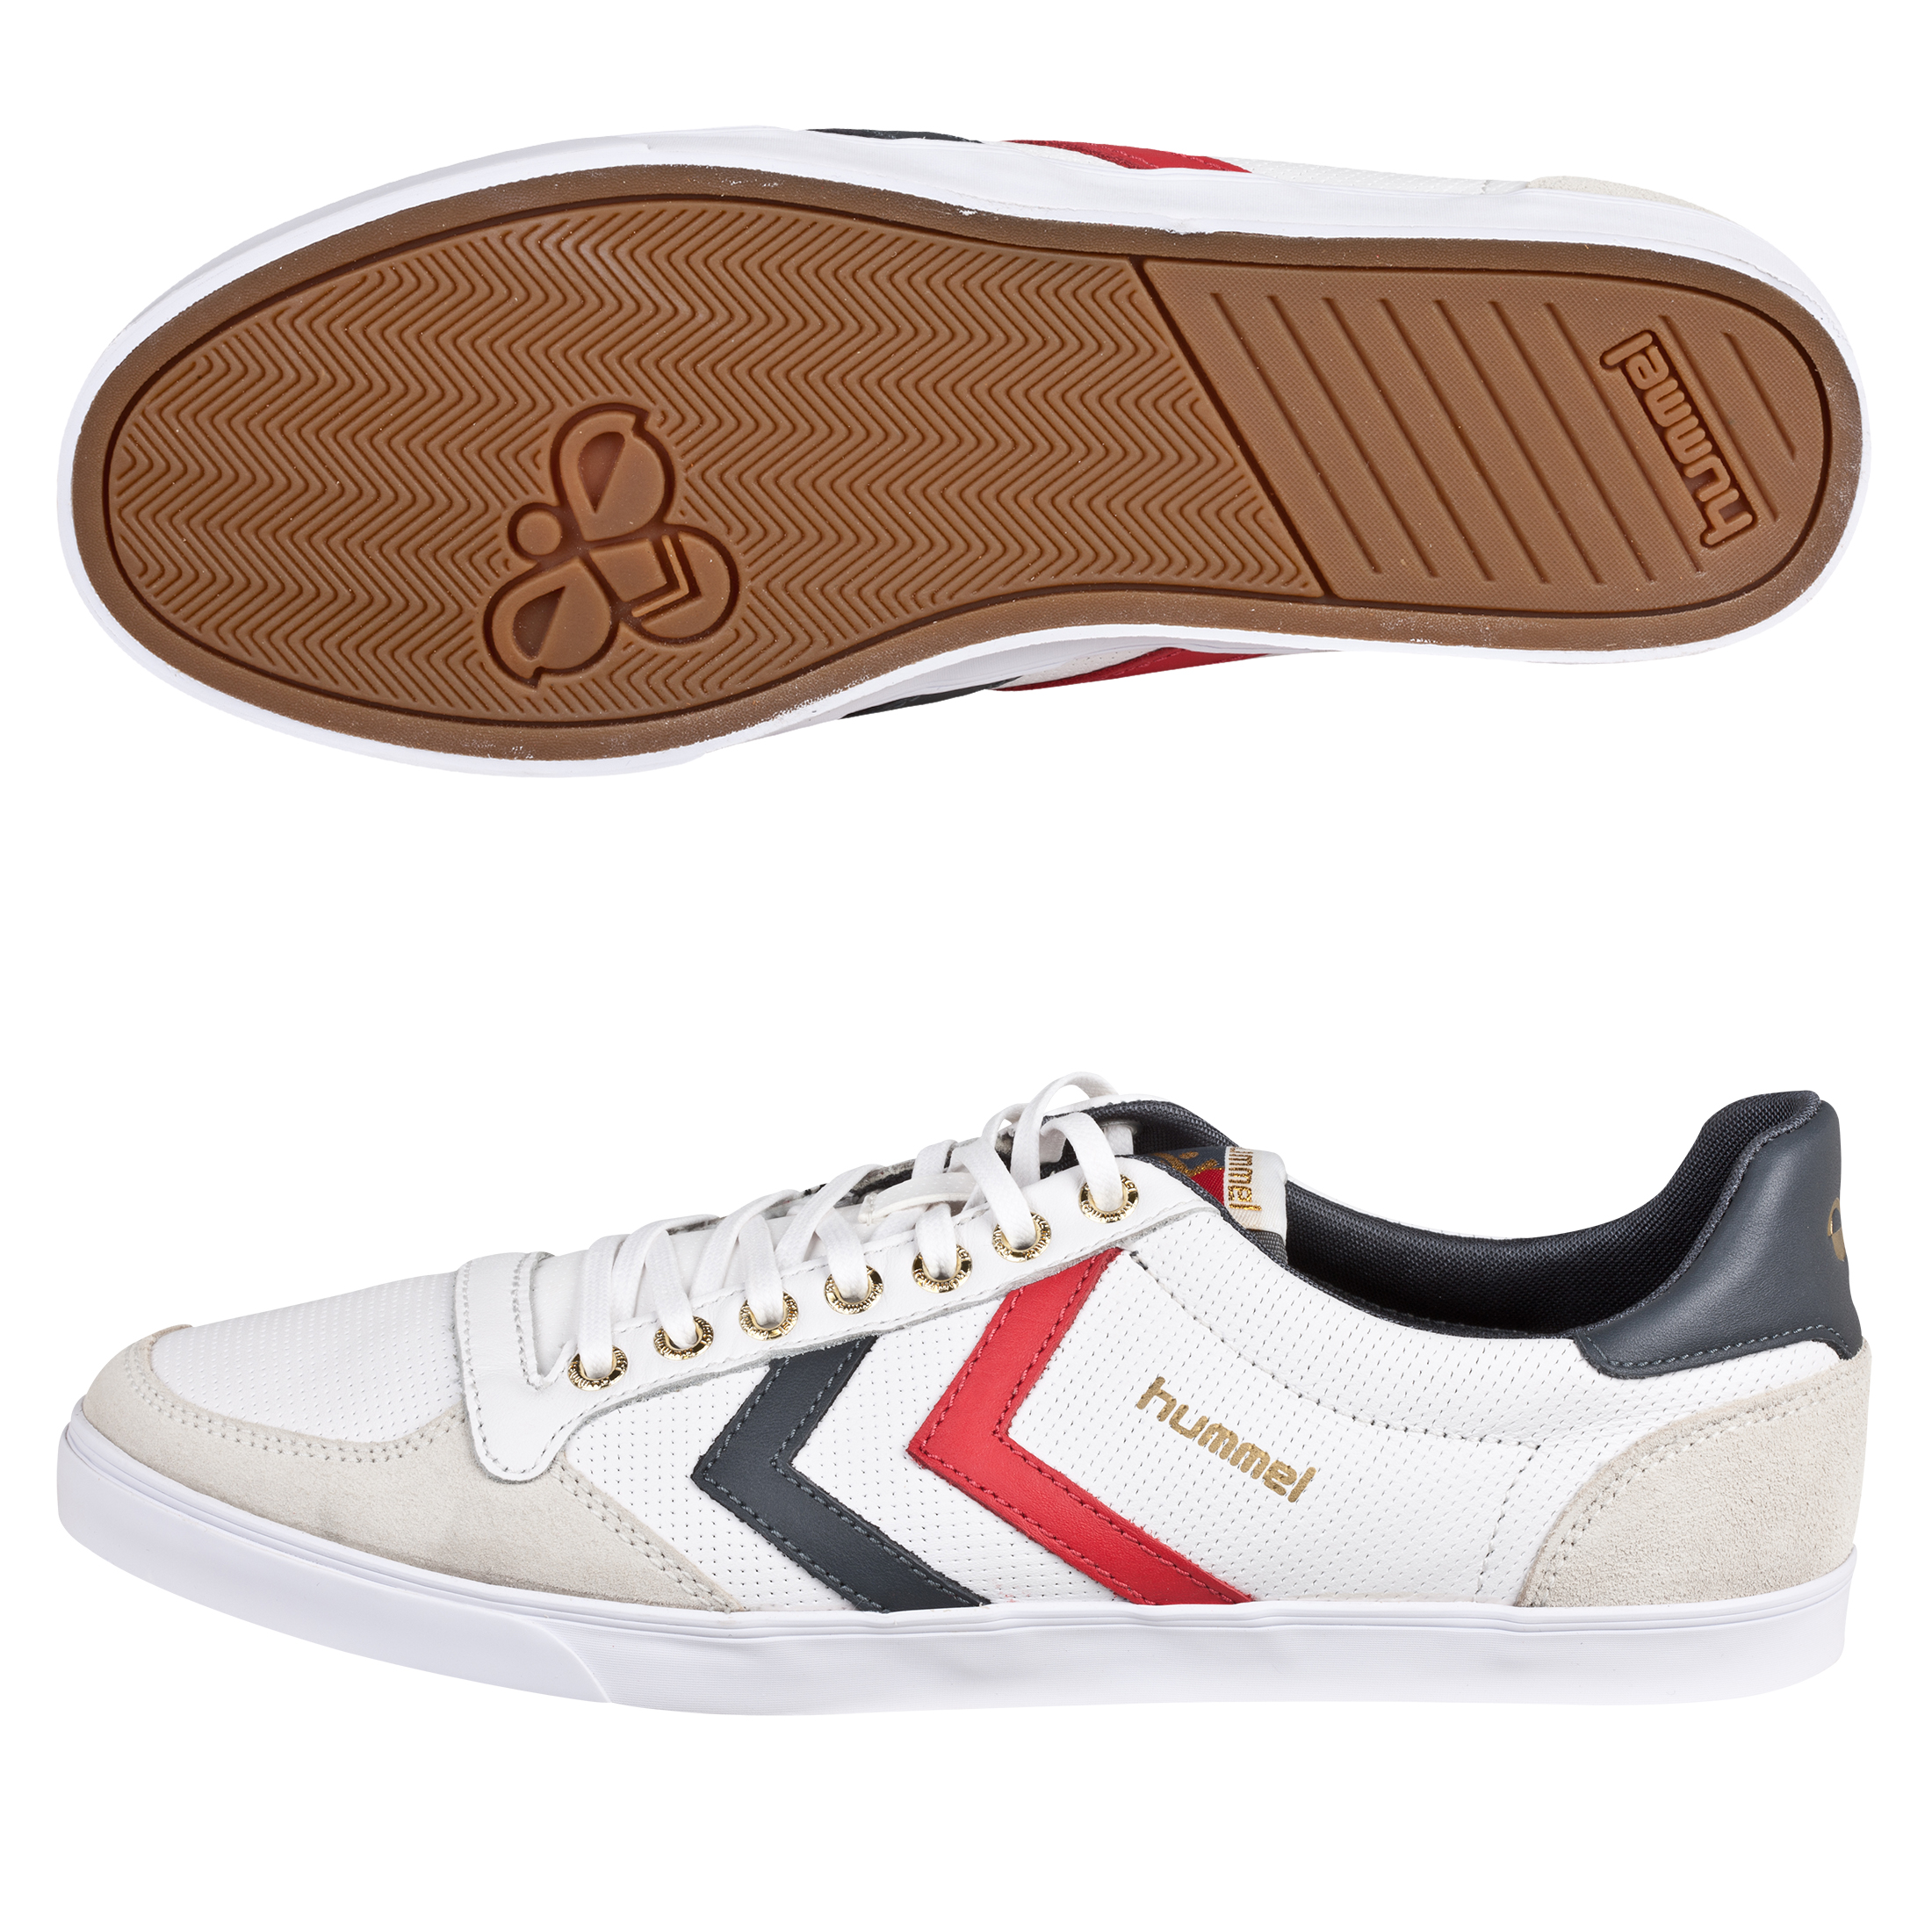 Hummel Slimmer Stadil Low Leather Trainers - White/Castlerock/Ribbon Red